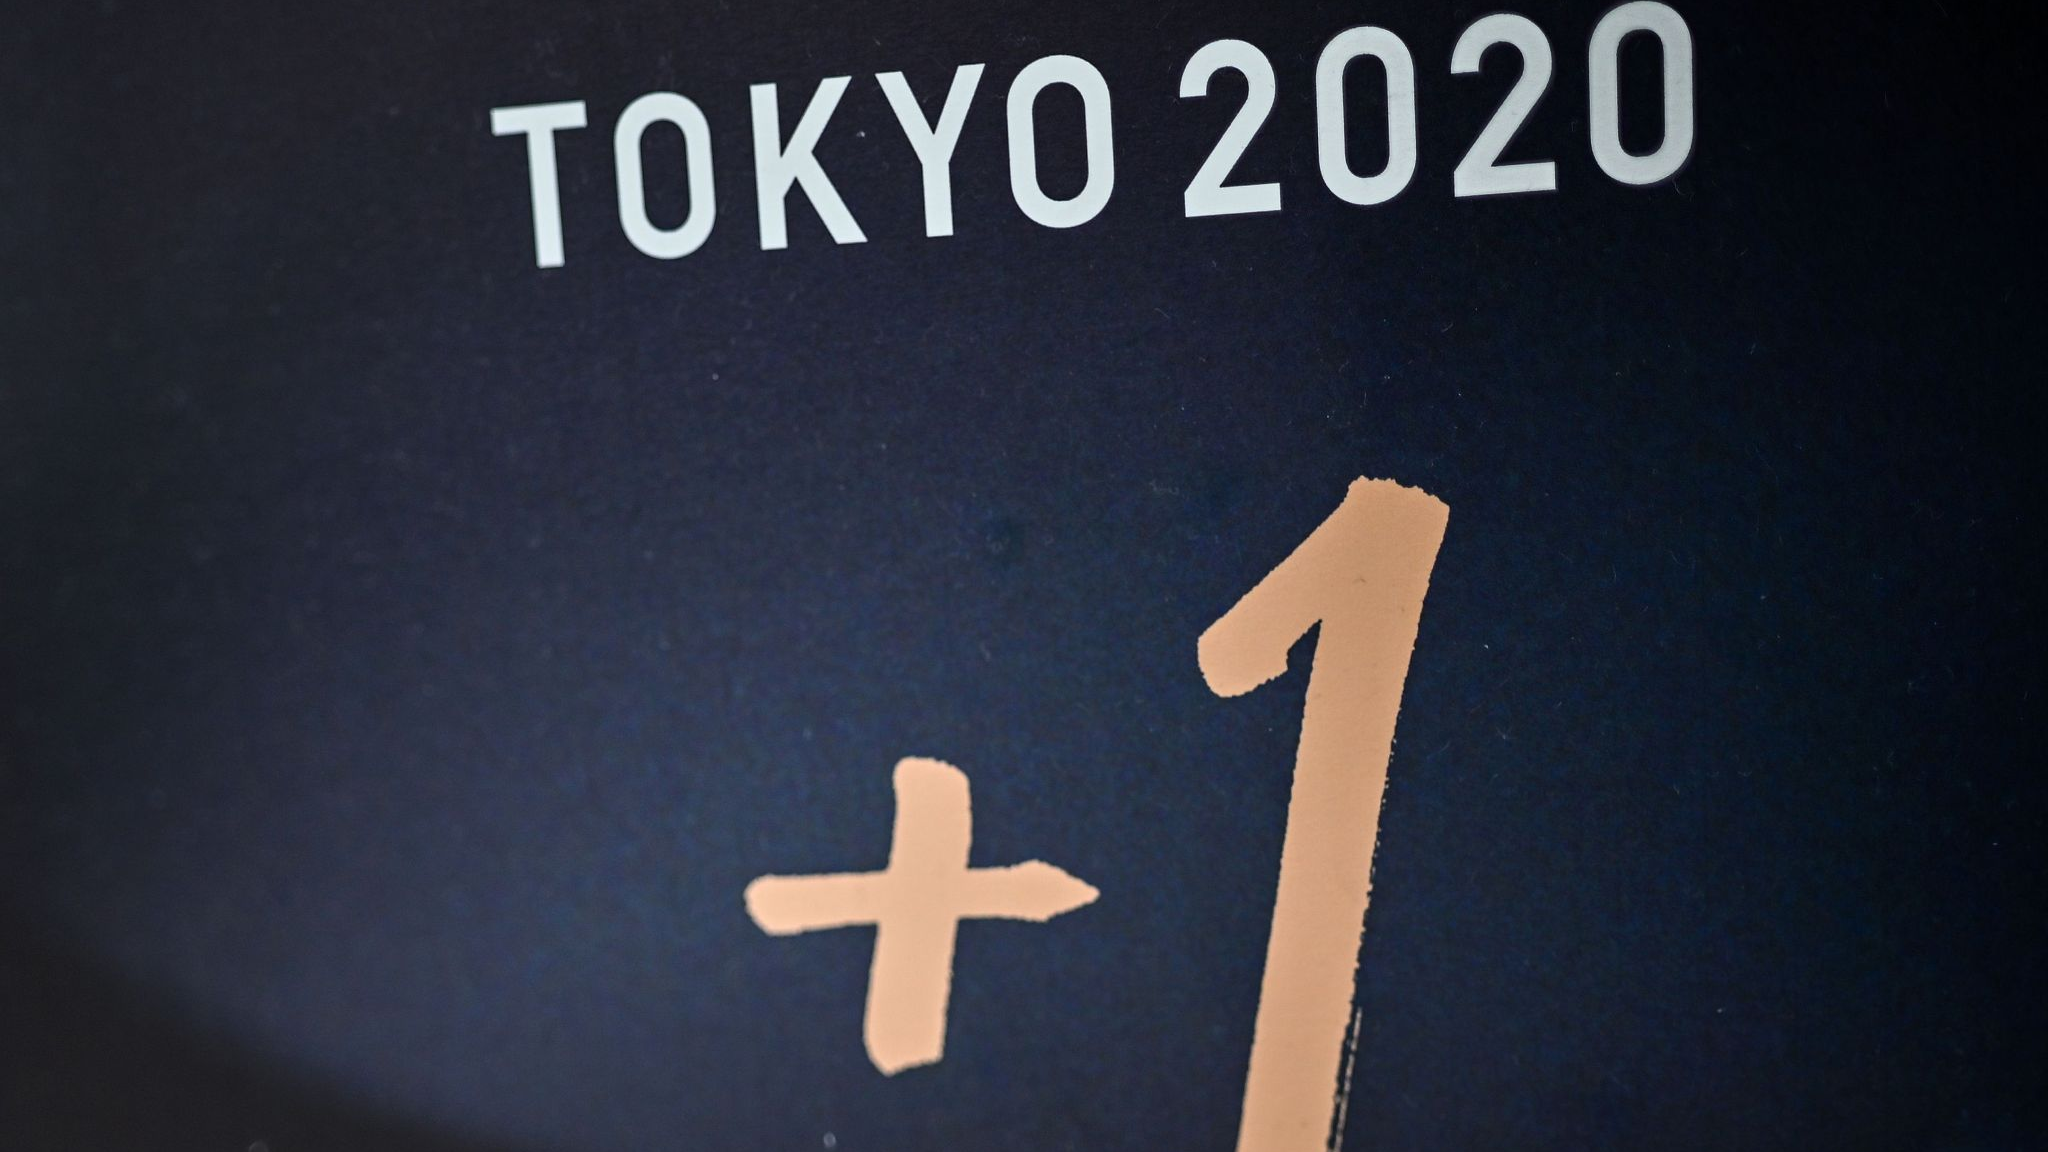 If you're an athlete for Tokyo Olympics, here's what you need to know